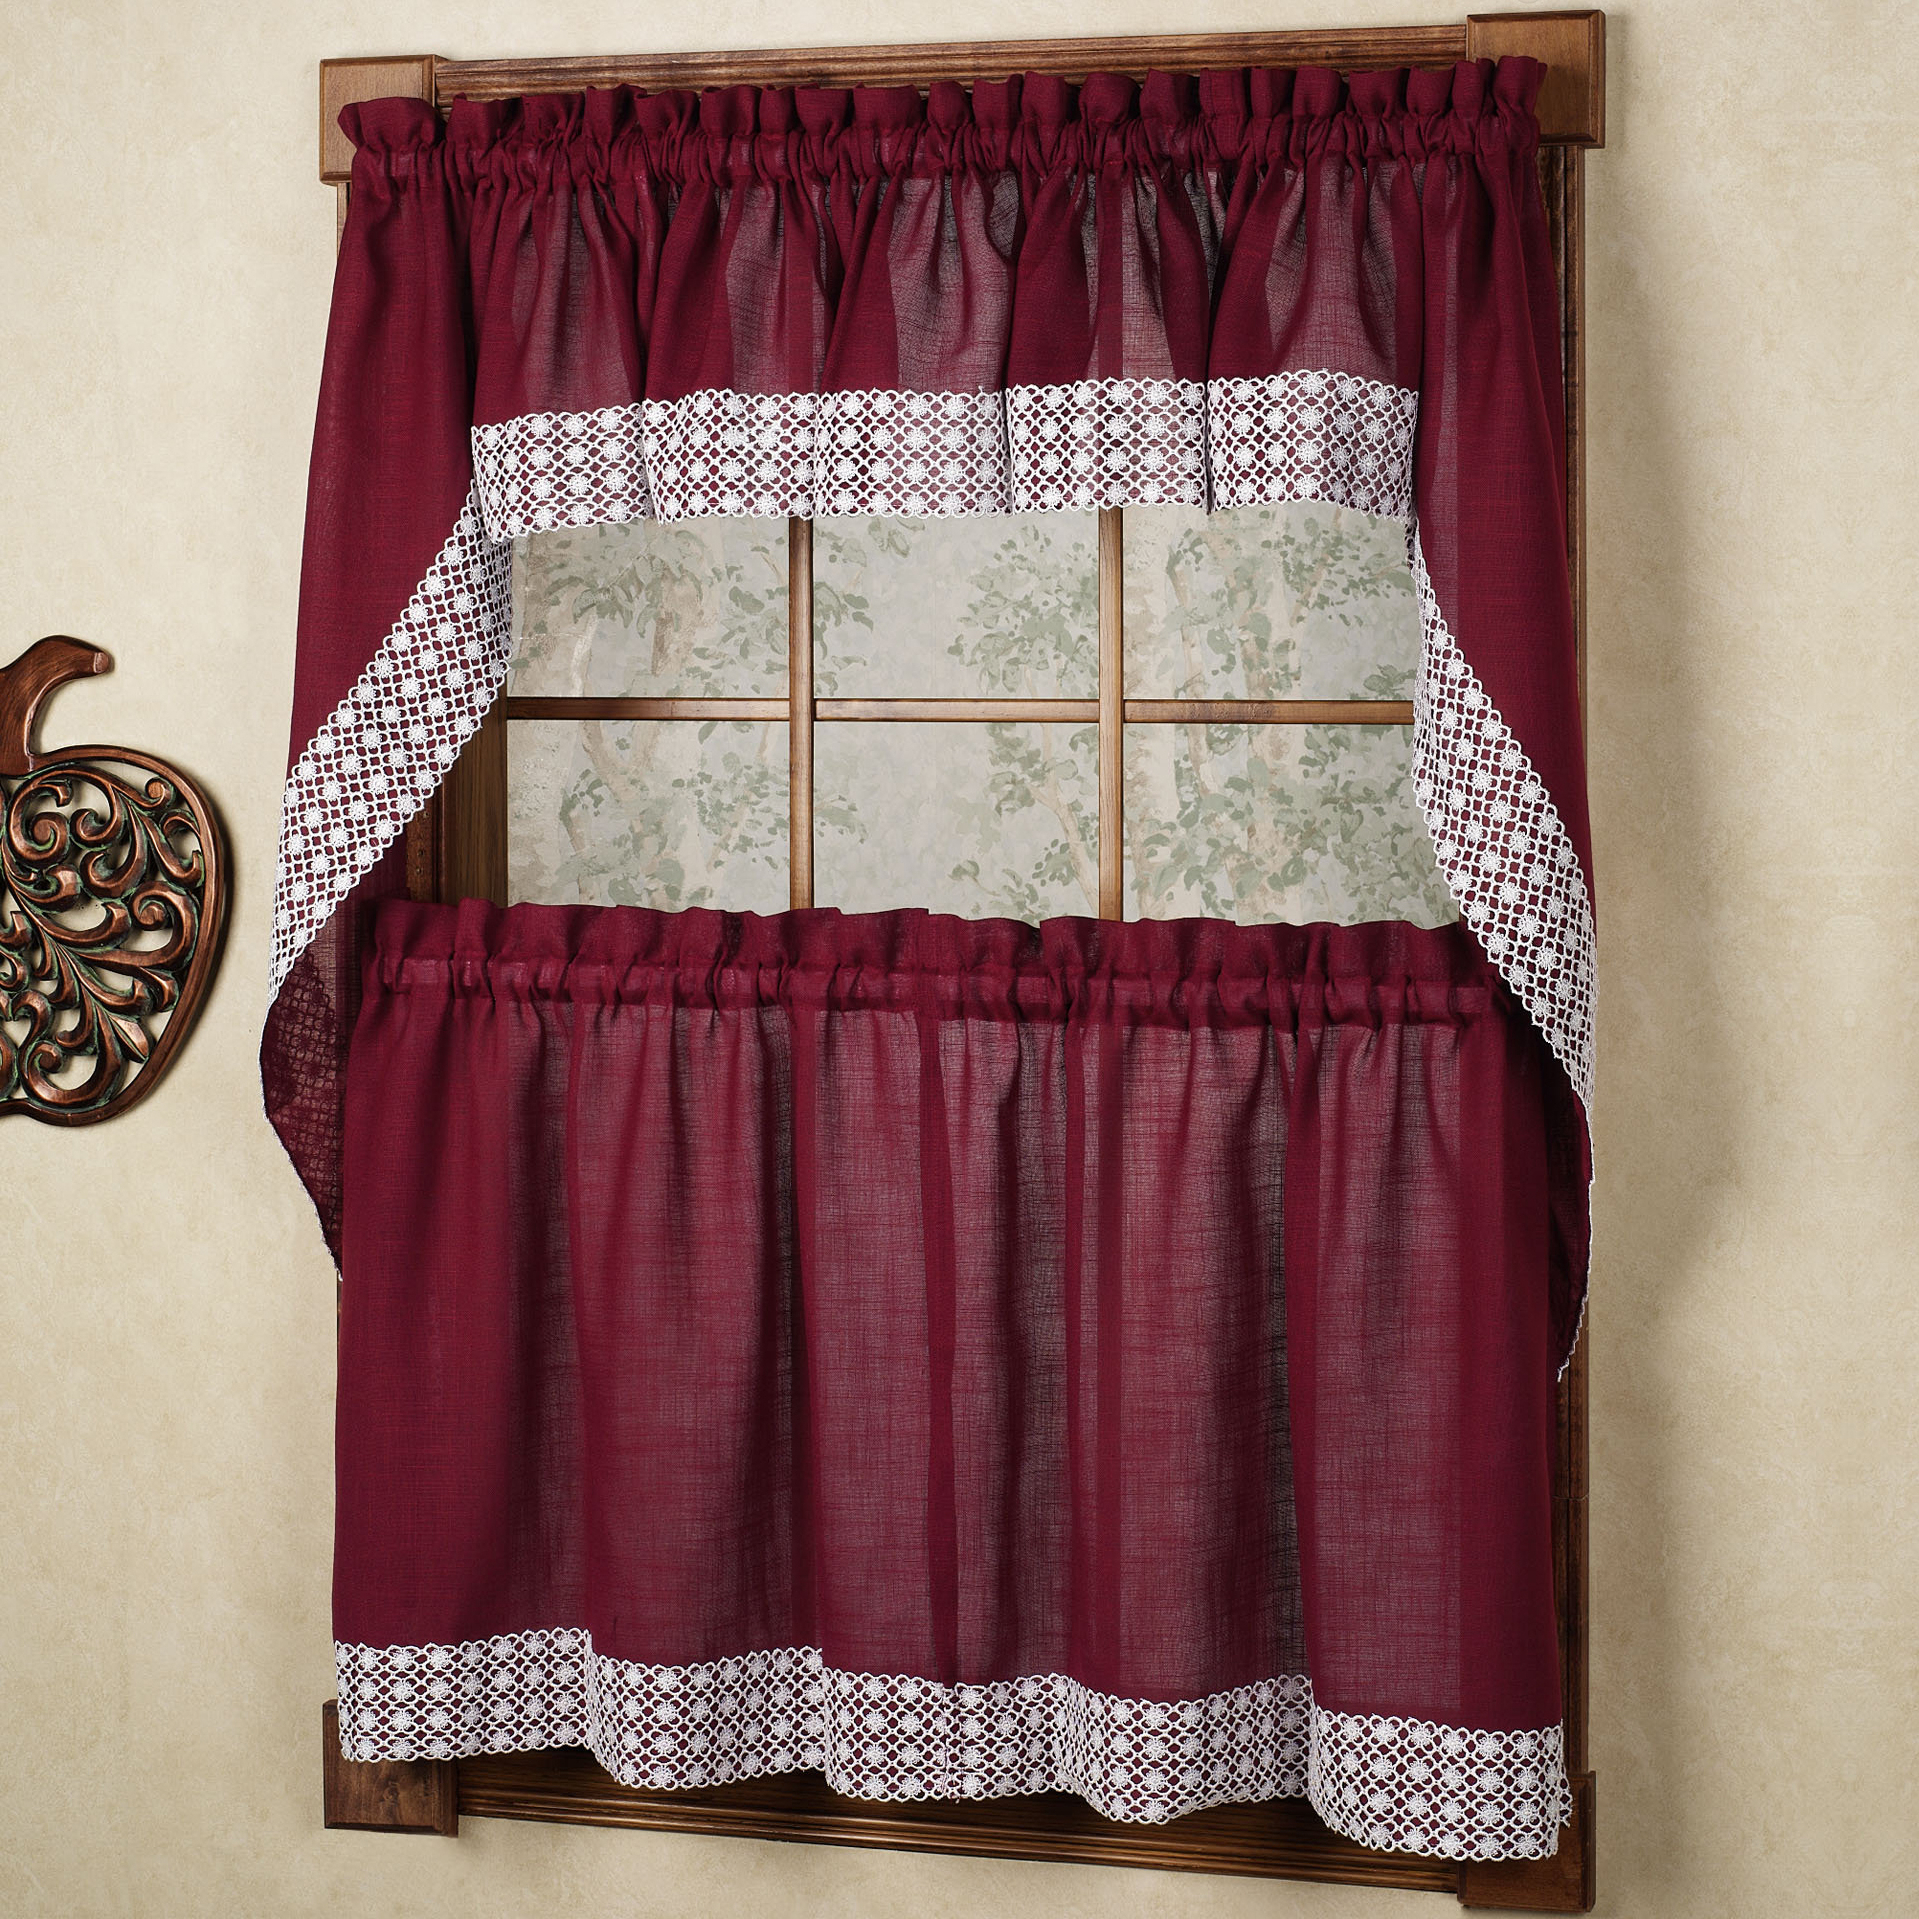 French Vanilla Country Style Curtain Parts With White Daisy Lace Accent Within Most Current Details About Salem Kitchen Curtain – Burgundy W/white Lace Trim – Lorraine Home Fashions (View 6 of 20)